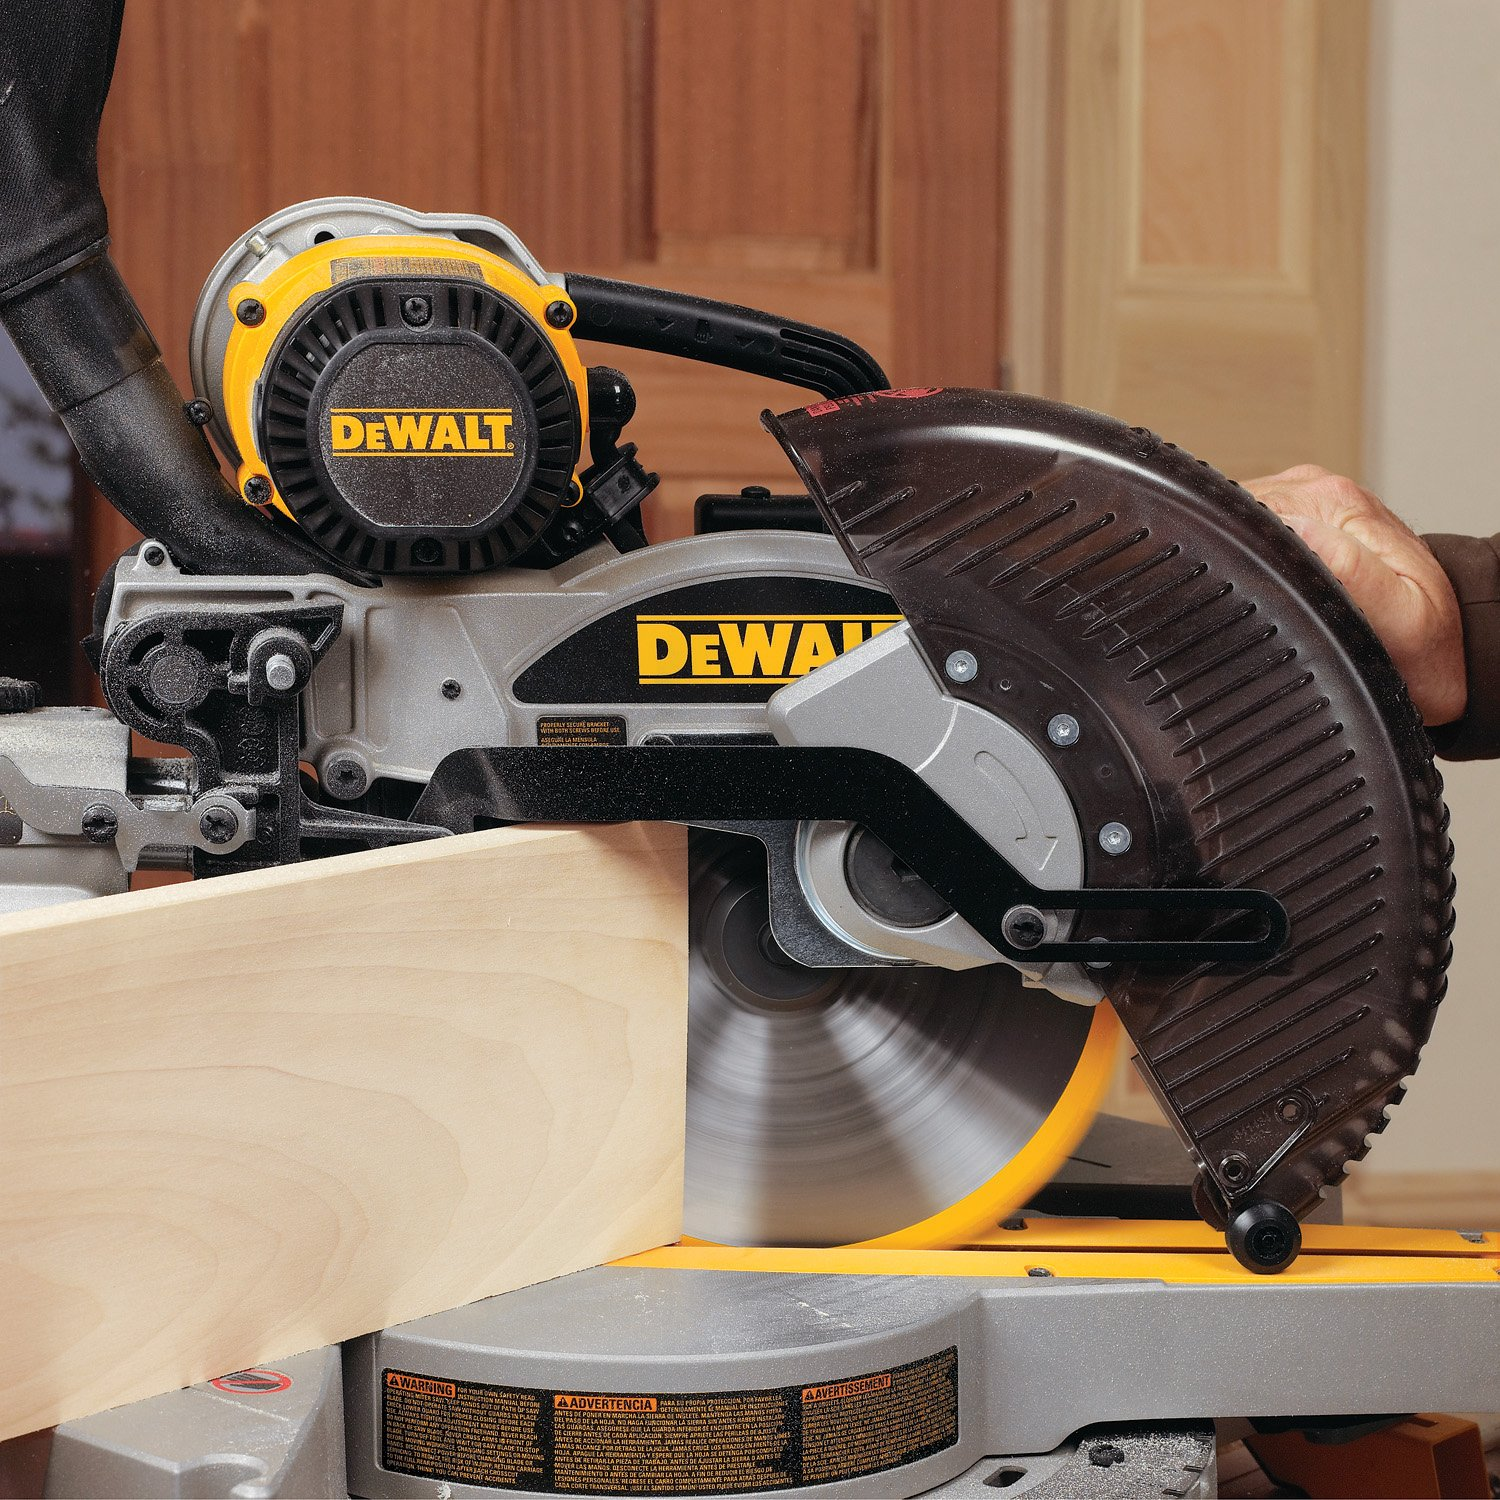 product image of DW717 in use